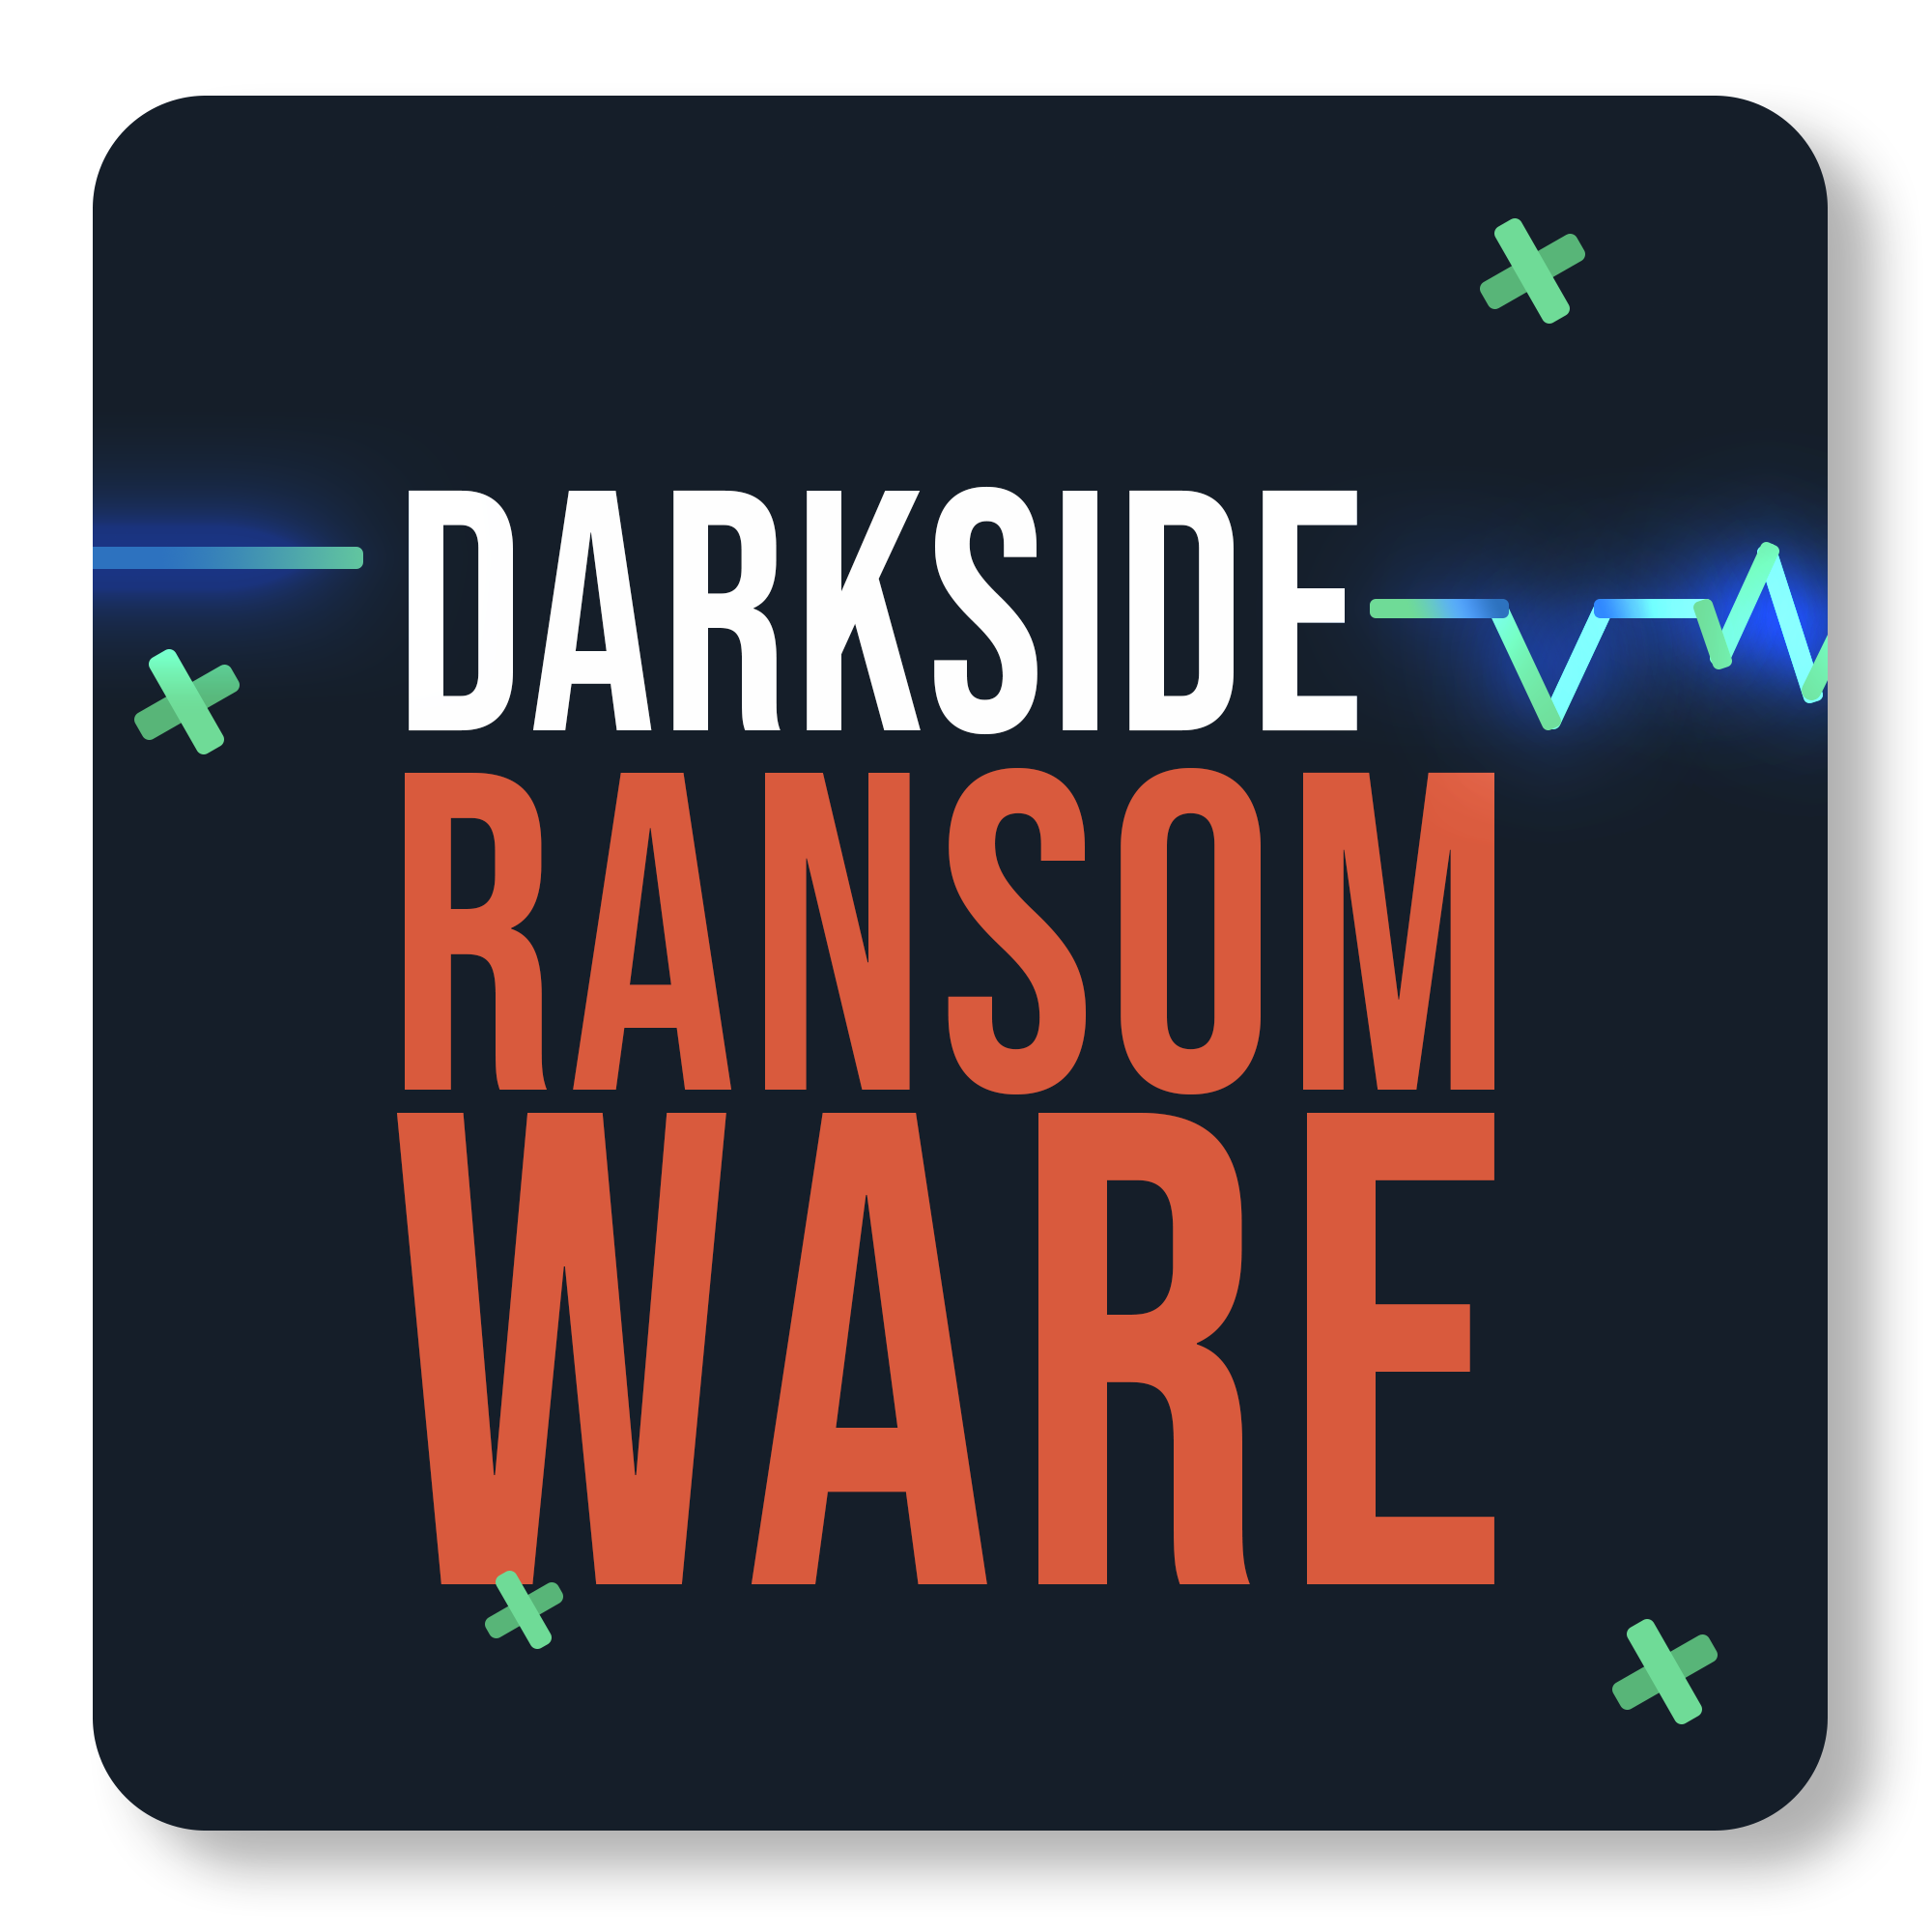 Darkside: The Ransomware that brought a US pipeline to a halt